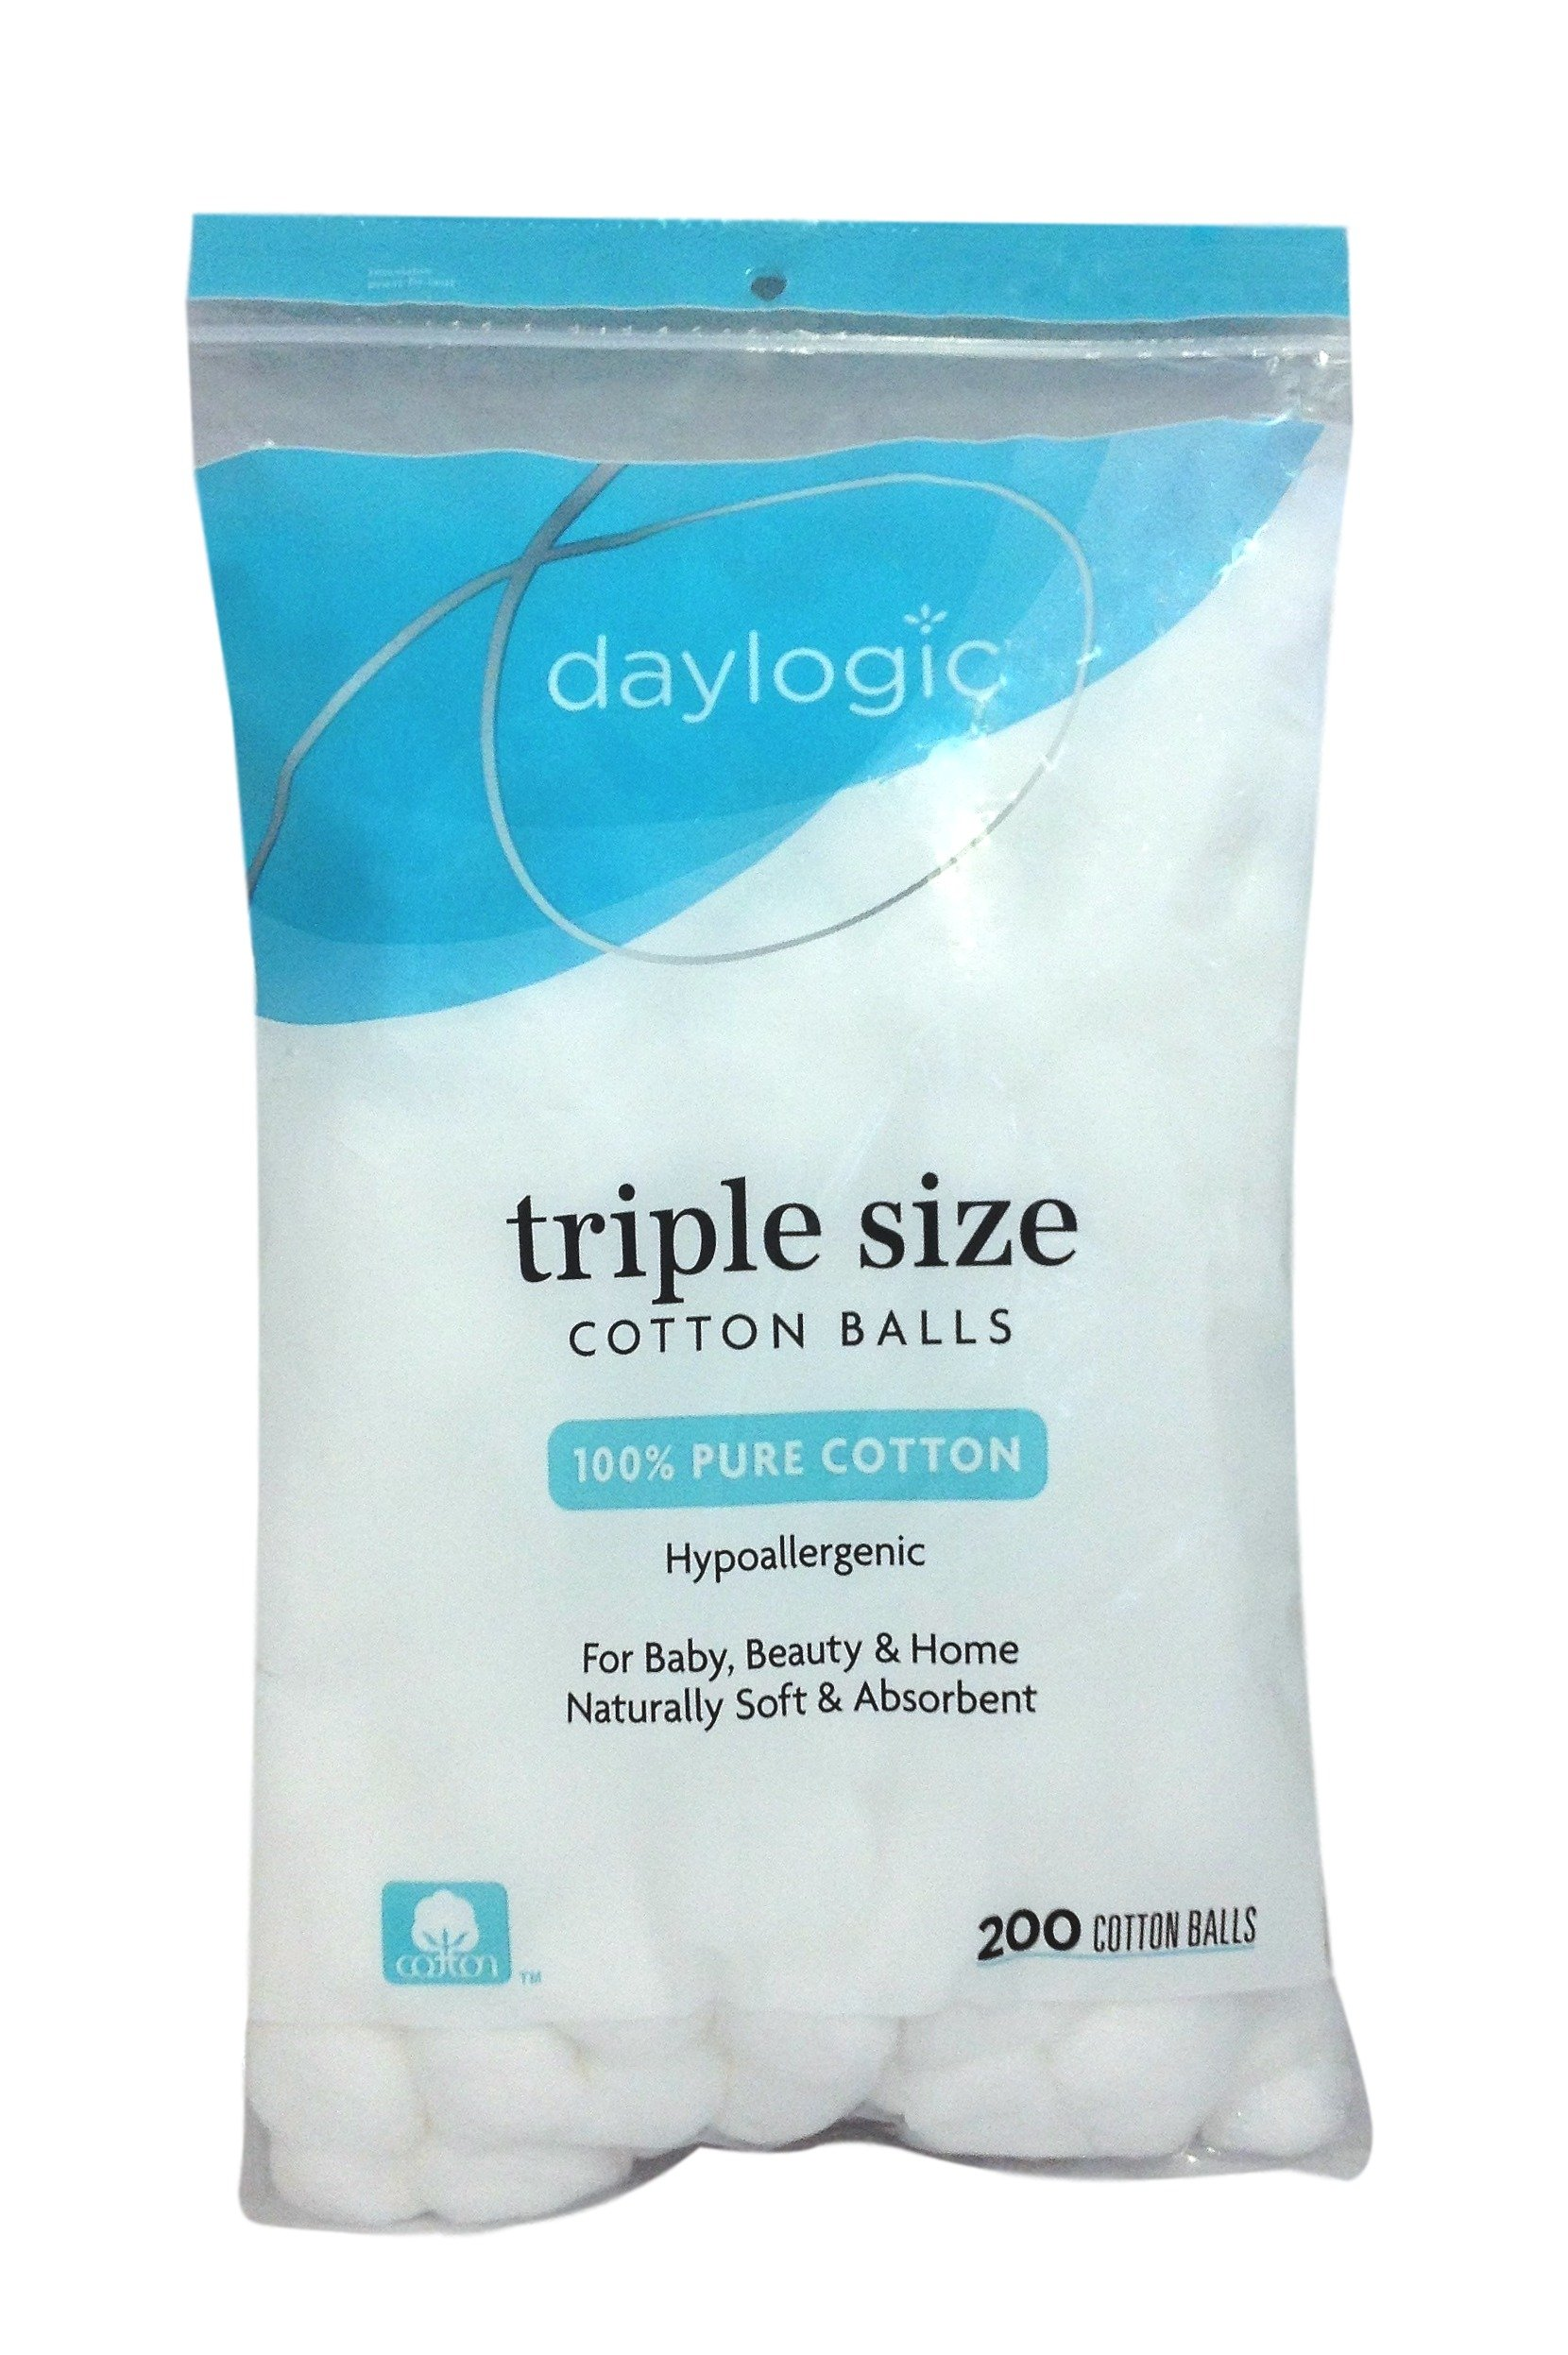 daylogic - Triple Size Cotton Balls - Pack of 3, 200 Count per Pack